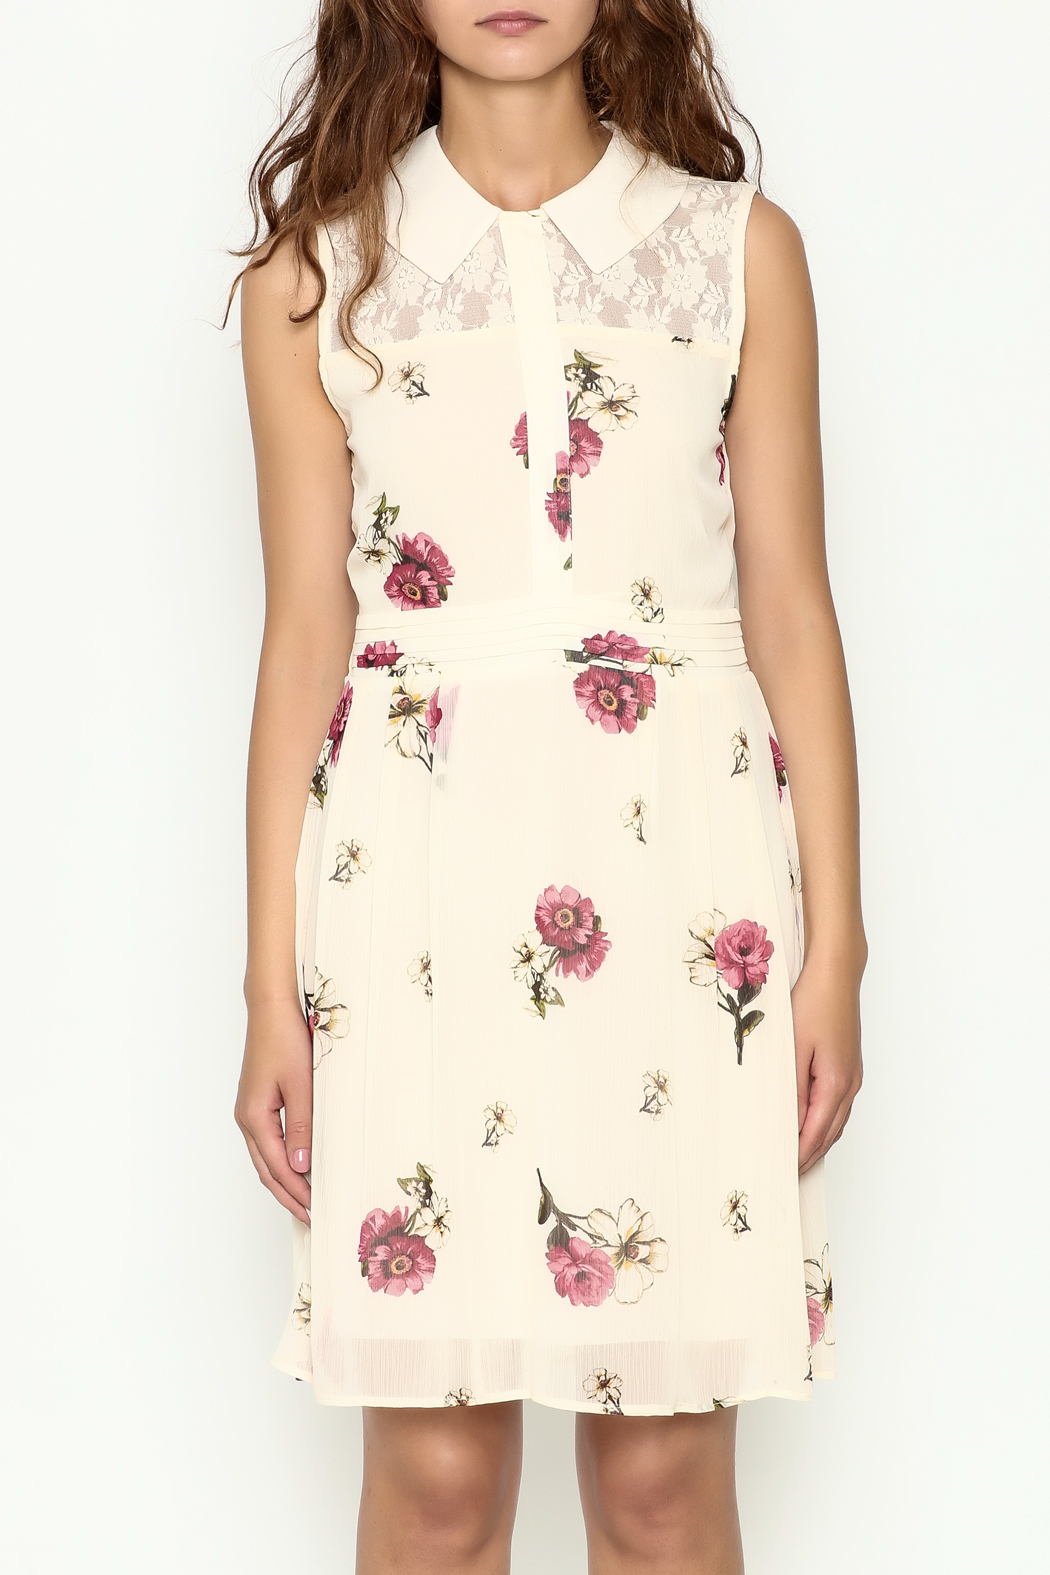 Marvy Fashion Floral Print Dress - Front Full Image